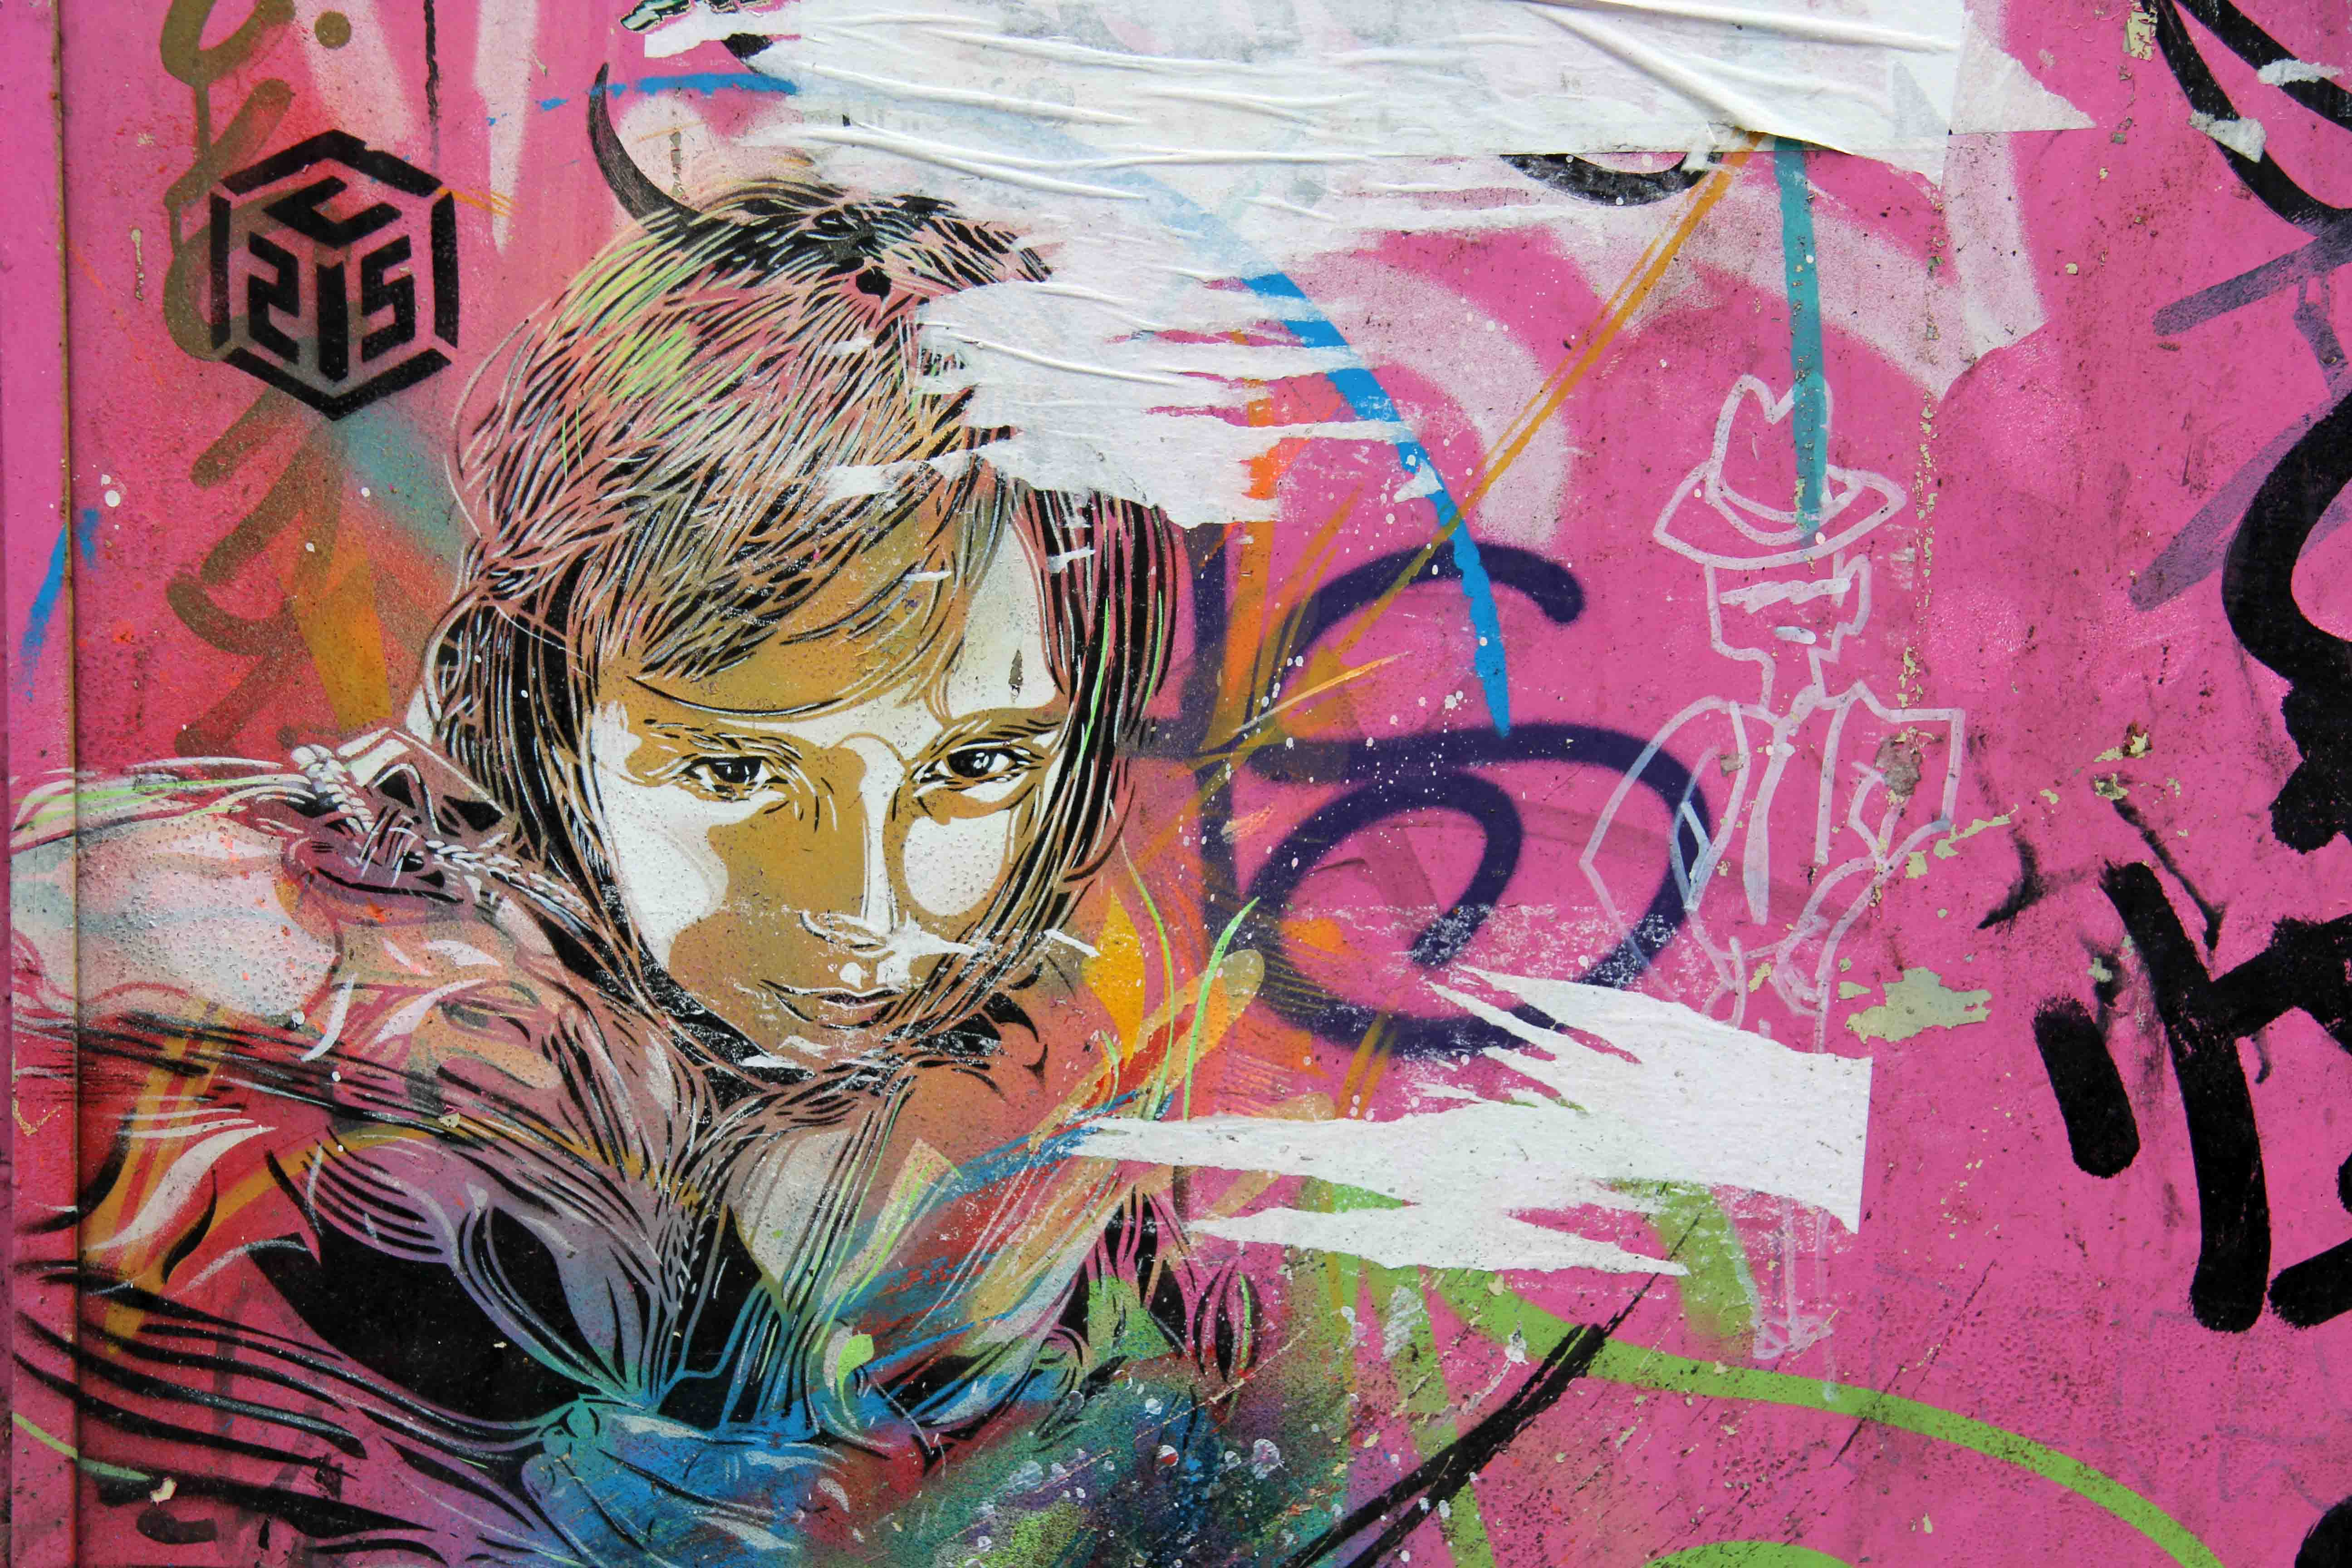 In The Pink - Street Art by C215 in Berlin